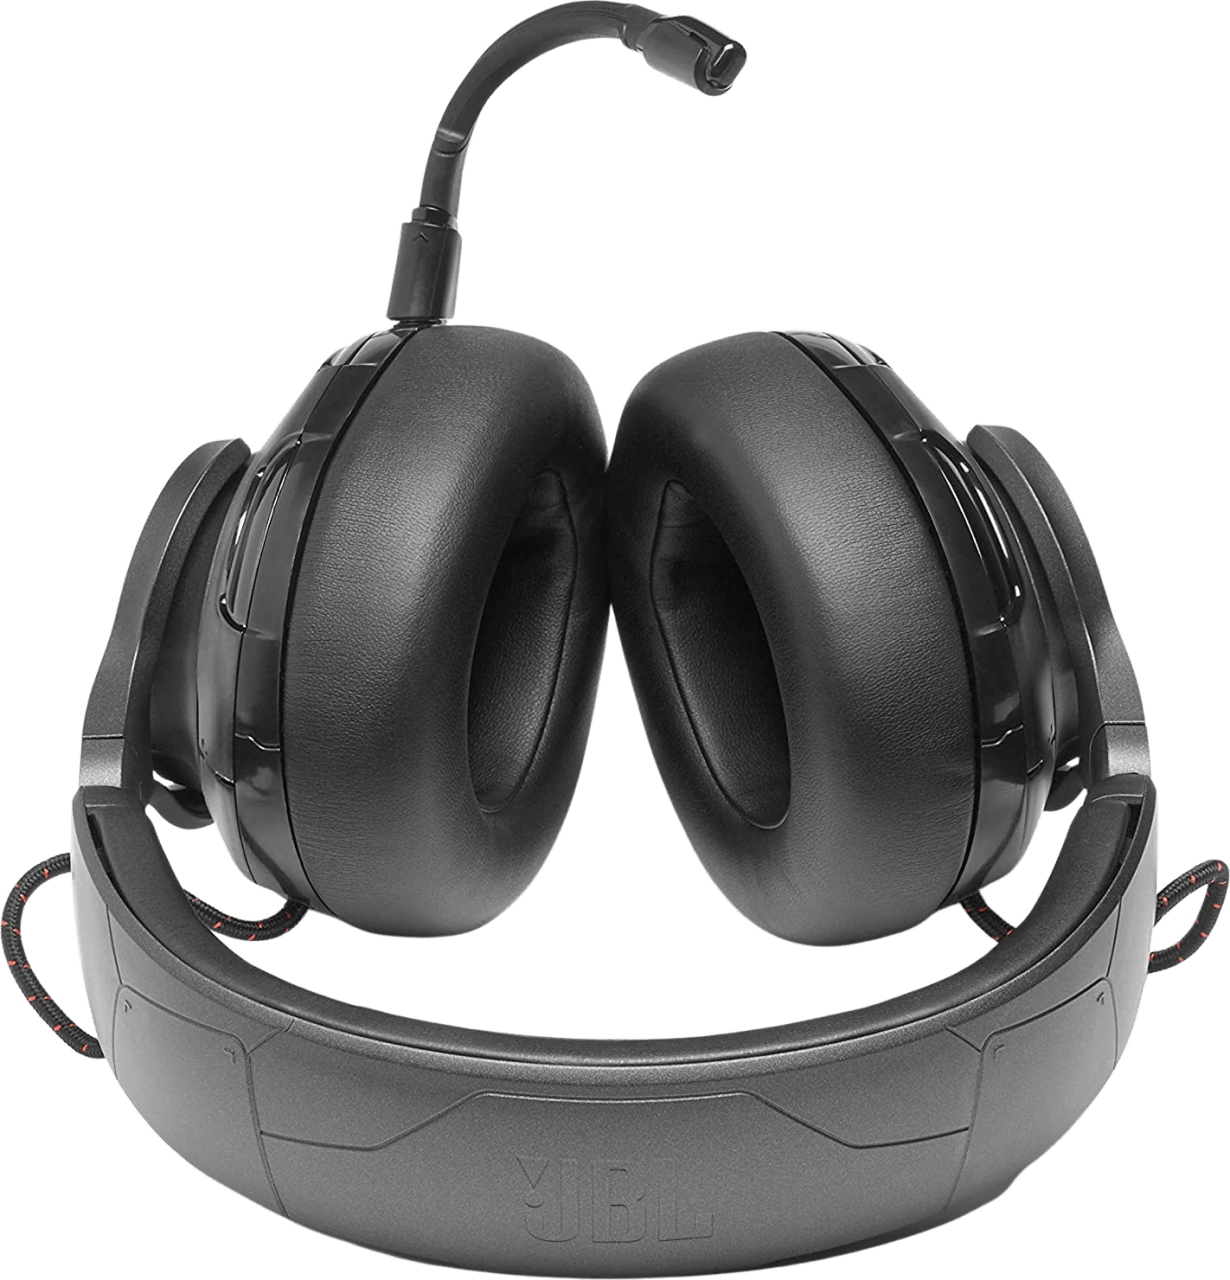 Black JBL Quantum One Over-ear Gaming Headphones.3